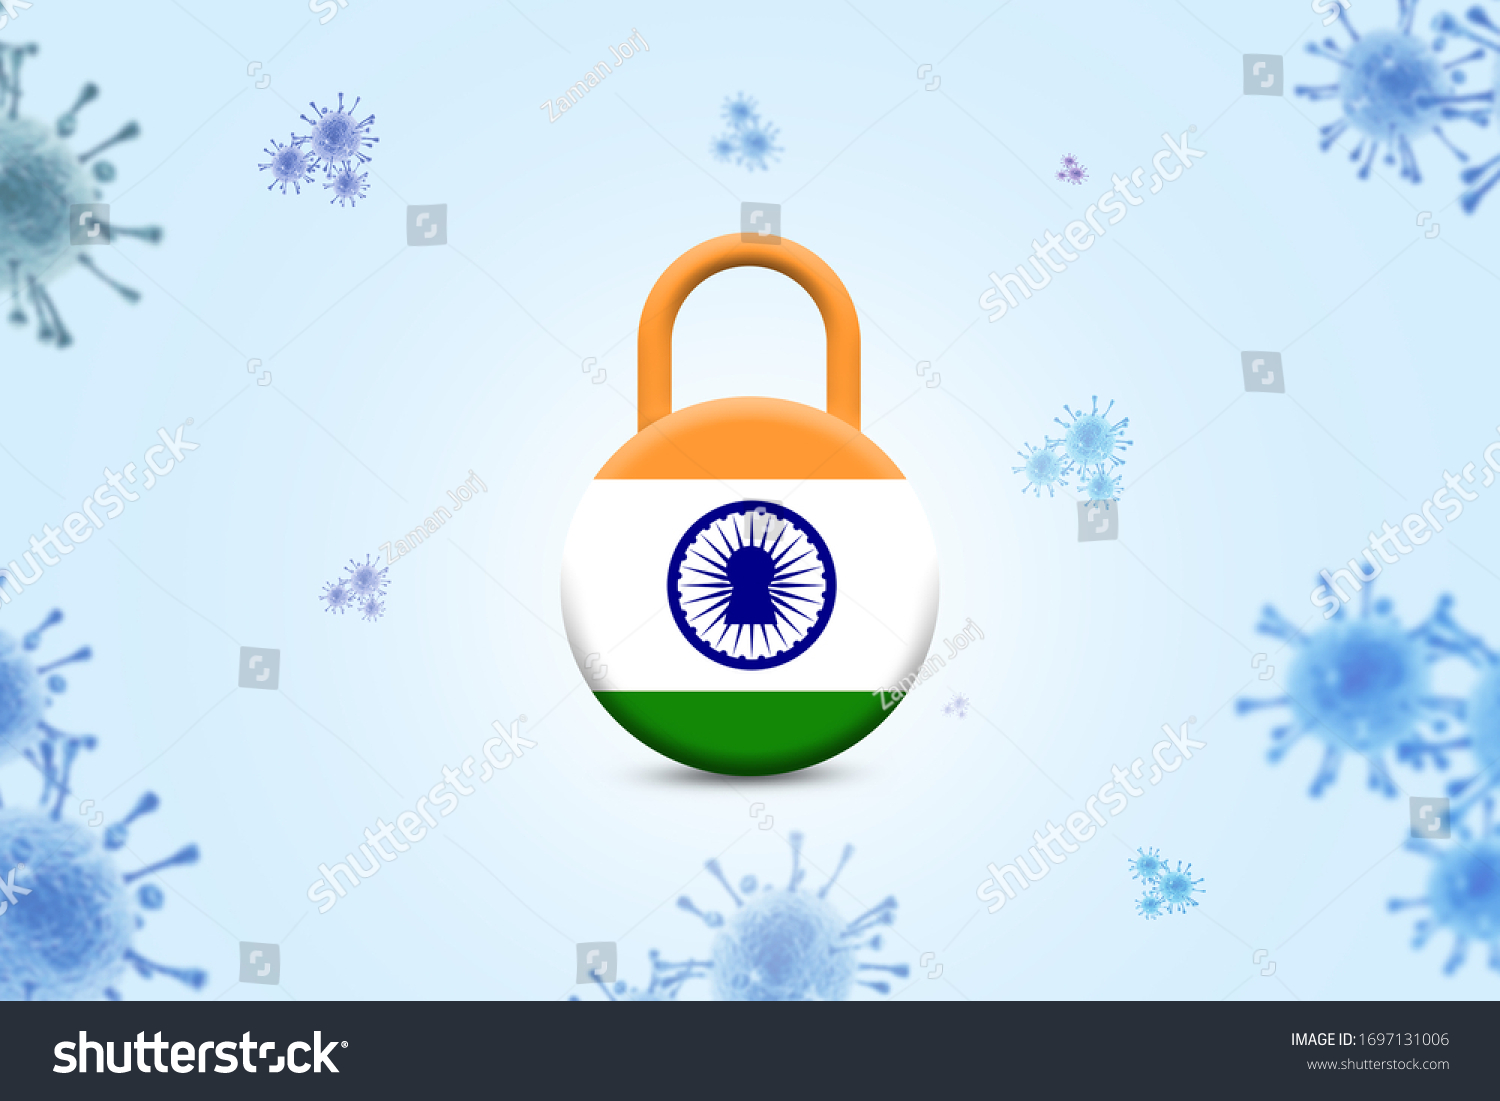 Covid19 Pandemic 3d India Lockdown Quarantine Stock Illustration ...